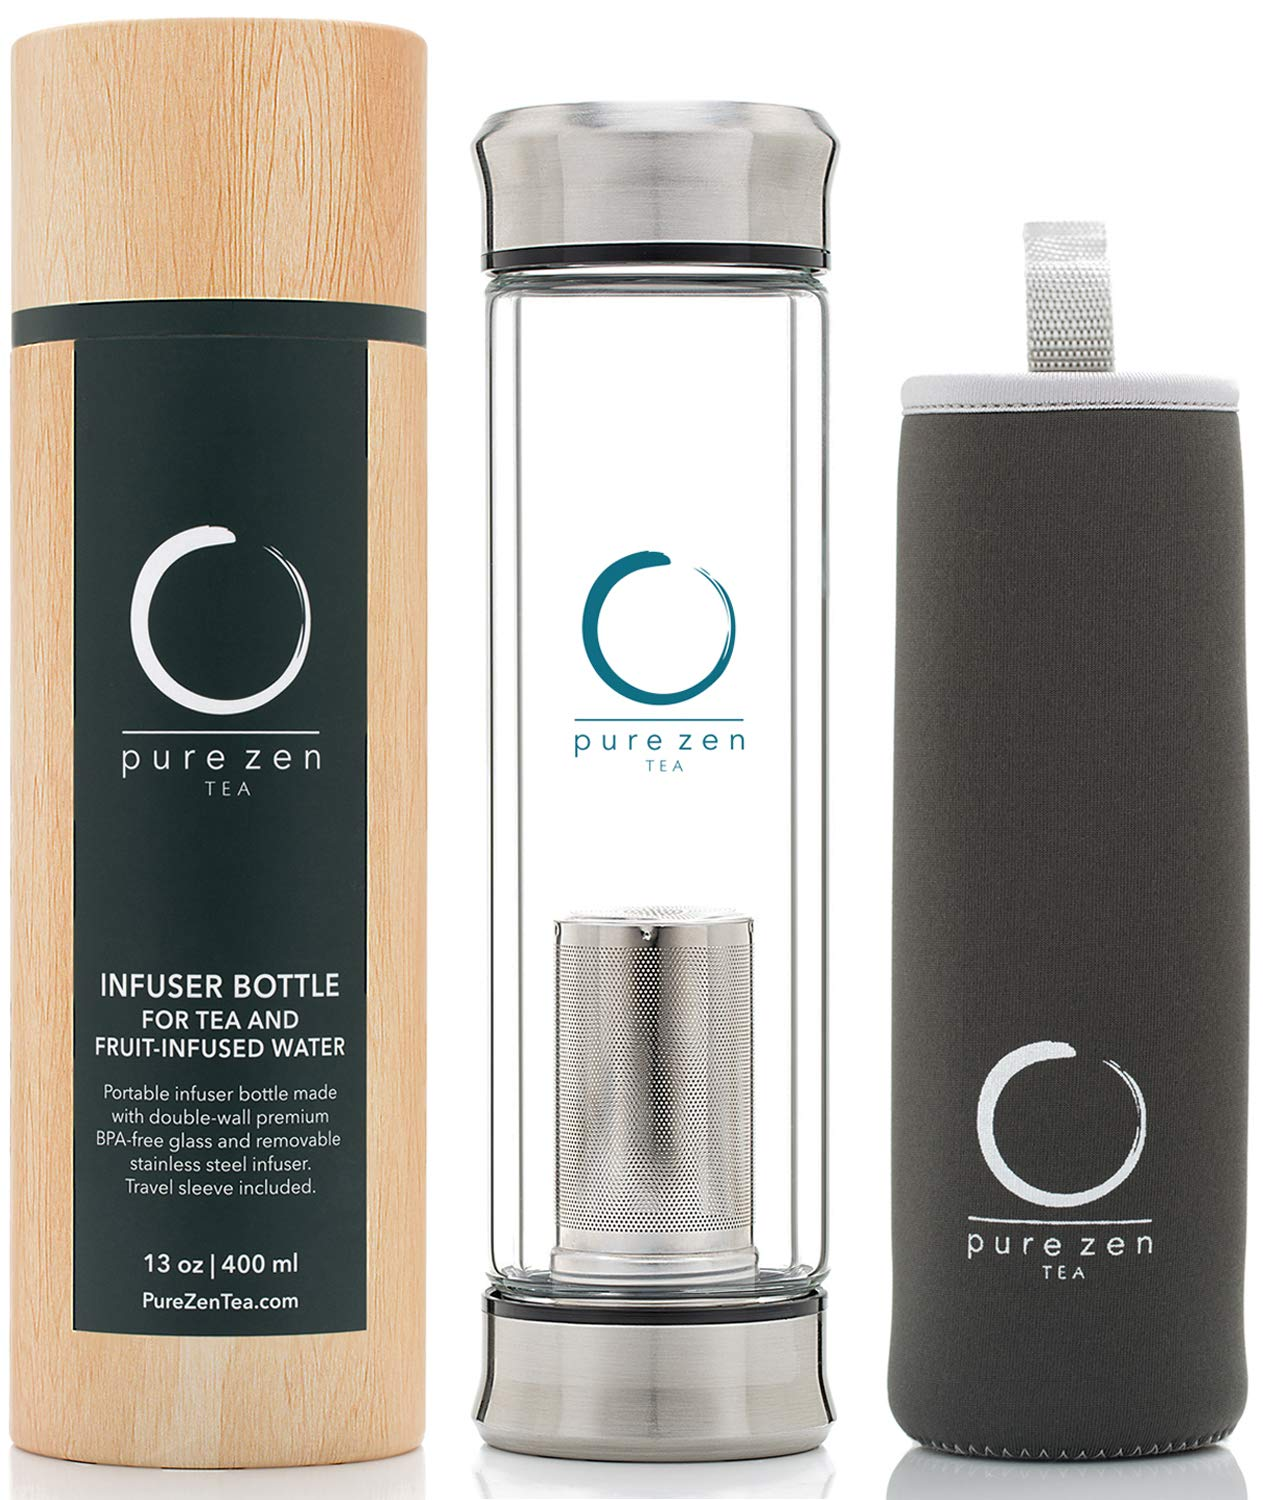 Pure Zen Tea Tumbler with Infuser | BPA Free Double Wall Glass Travel Tea Mug with Stainless Steel Filter | Leakproof Tea Bottle with Strainer For Loose Leaf Tea and Fruit Water 13 Ounce TT1